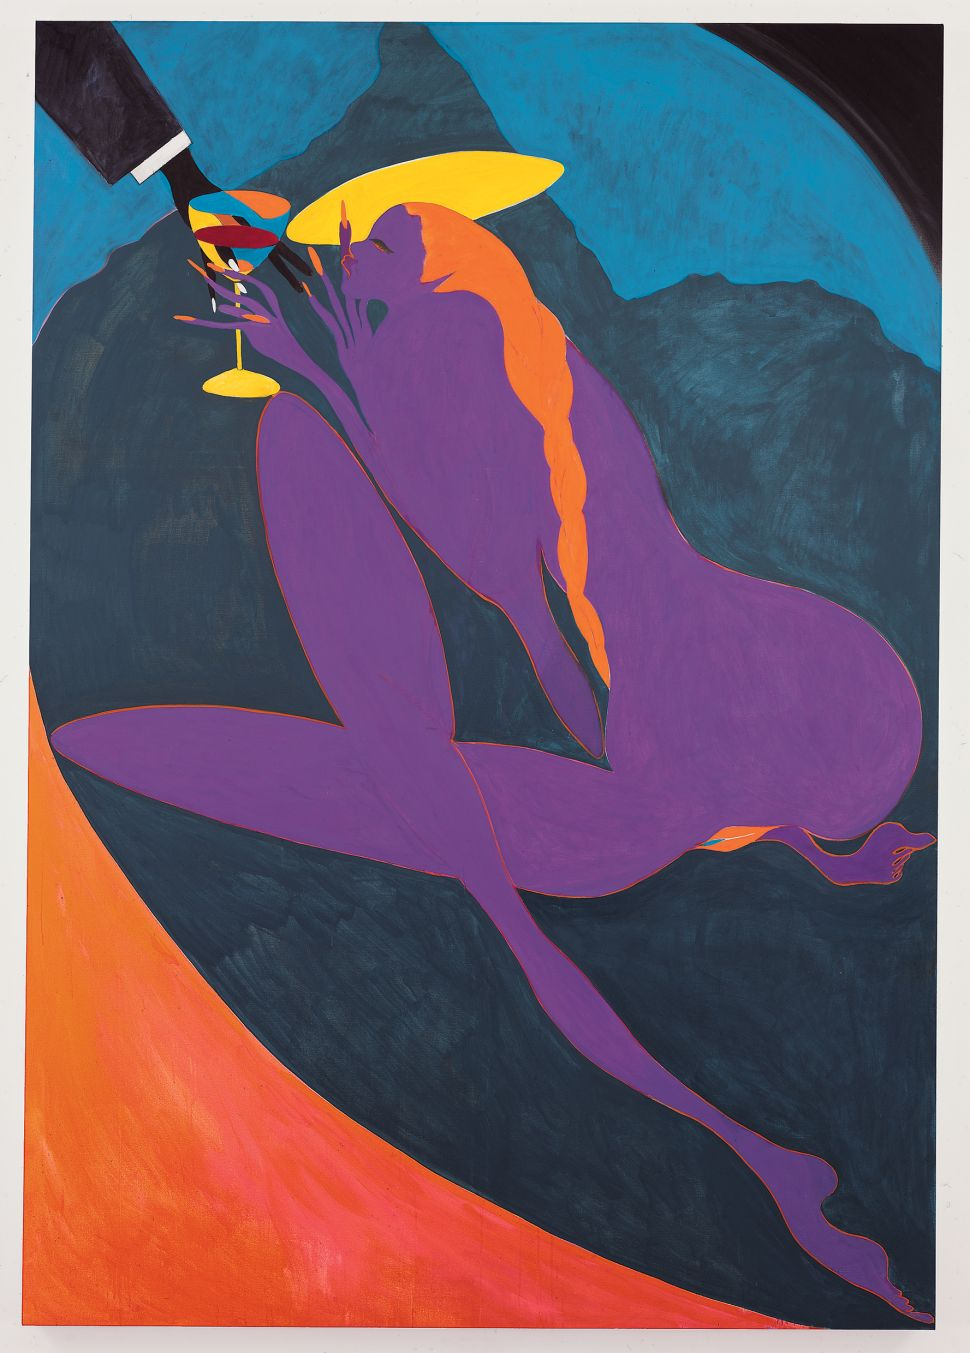 A Fresh Look at Chris Ofili, a Painter Propelled by Controversy, at the New Museum